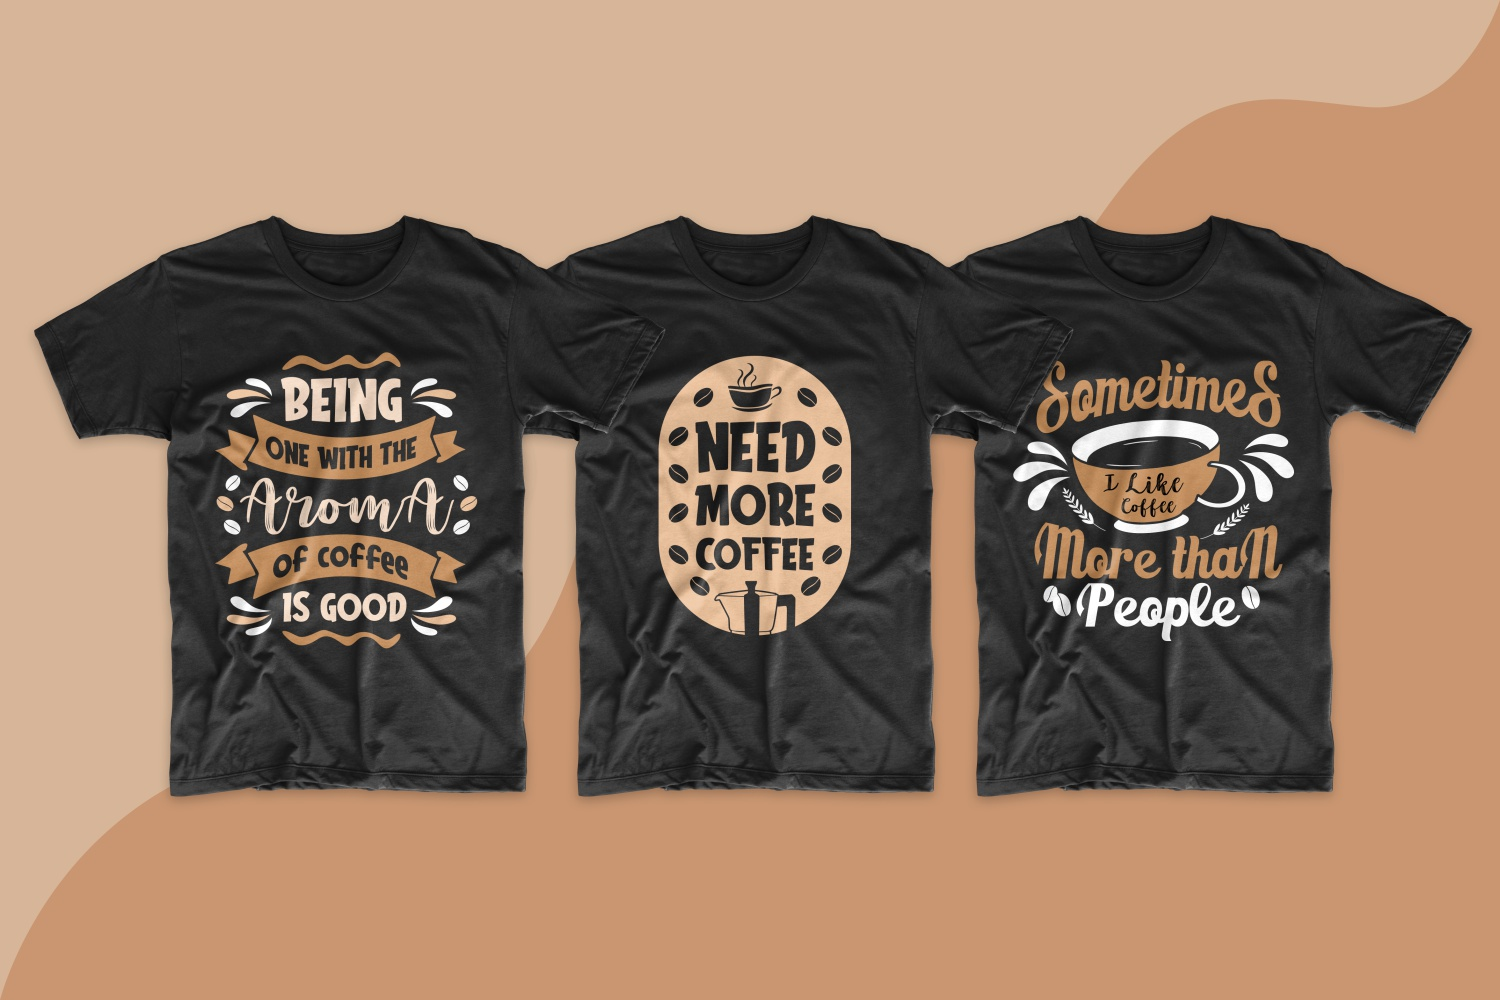 Dark T-shirts with coffee-colored lettering.